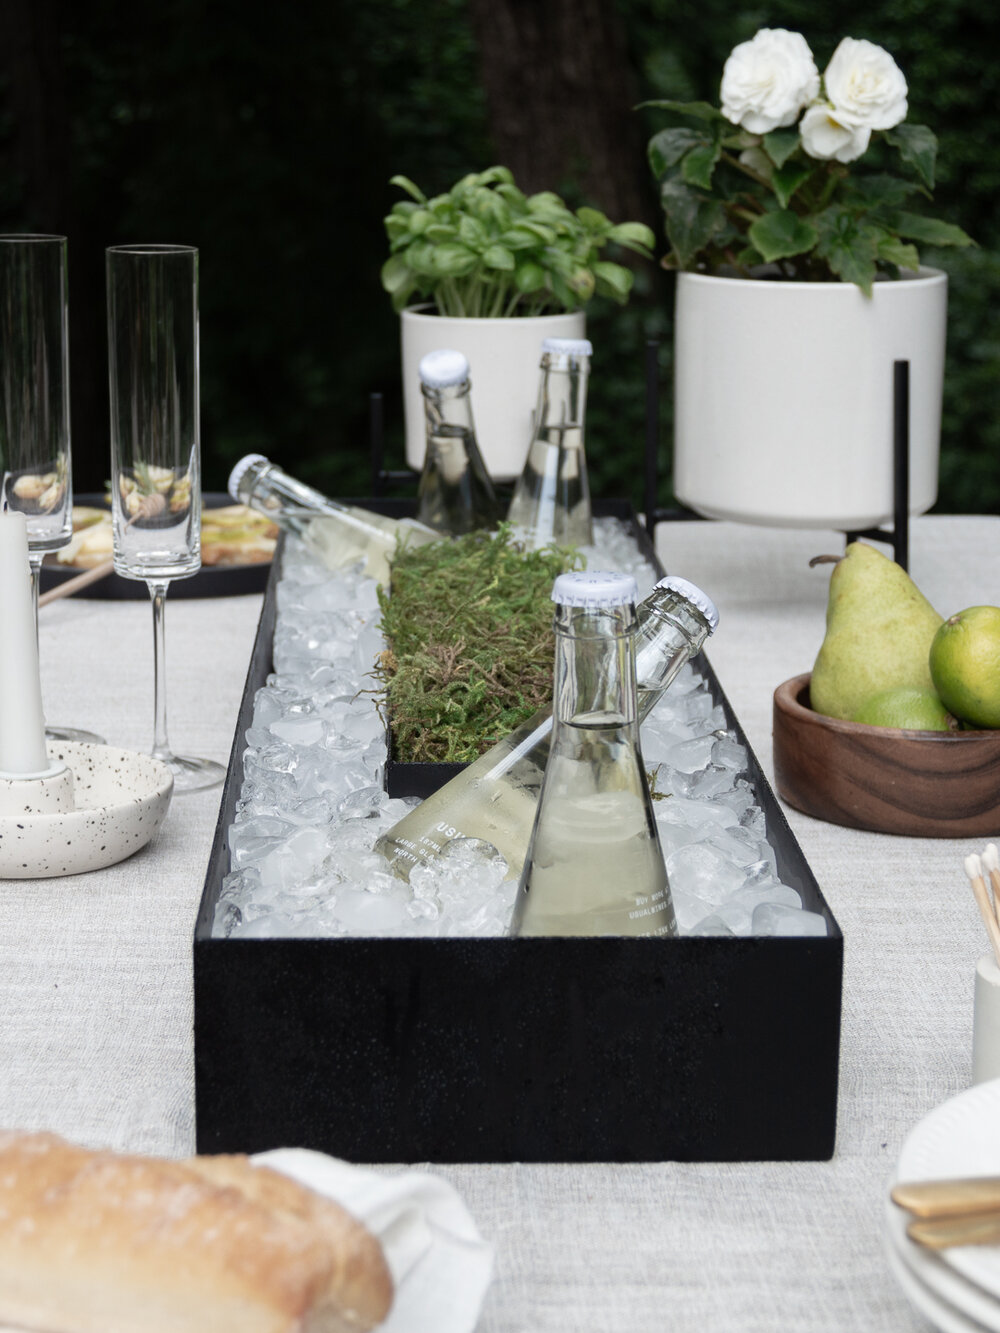 Bottles of champagne in a tabletop planter - chic dining al fresco date night.jpg